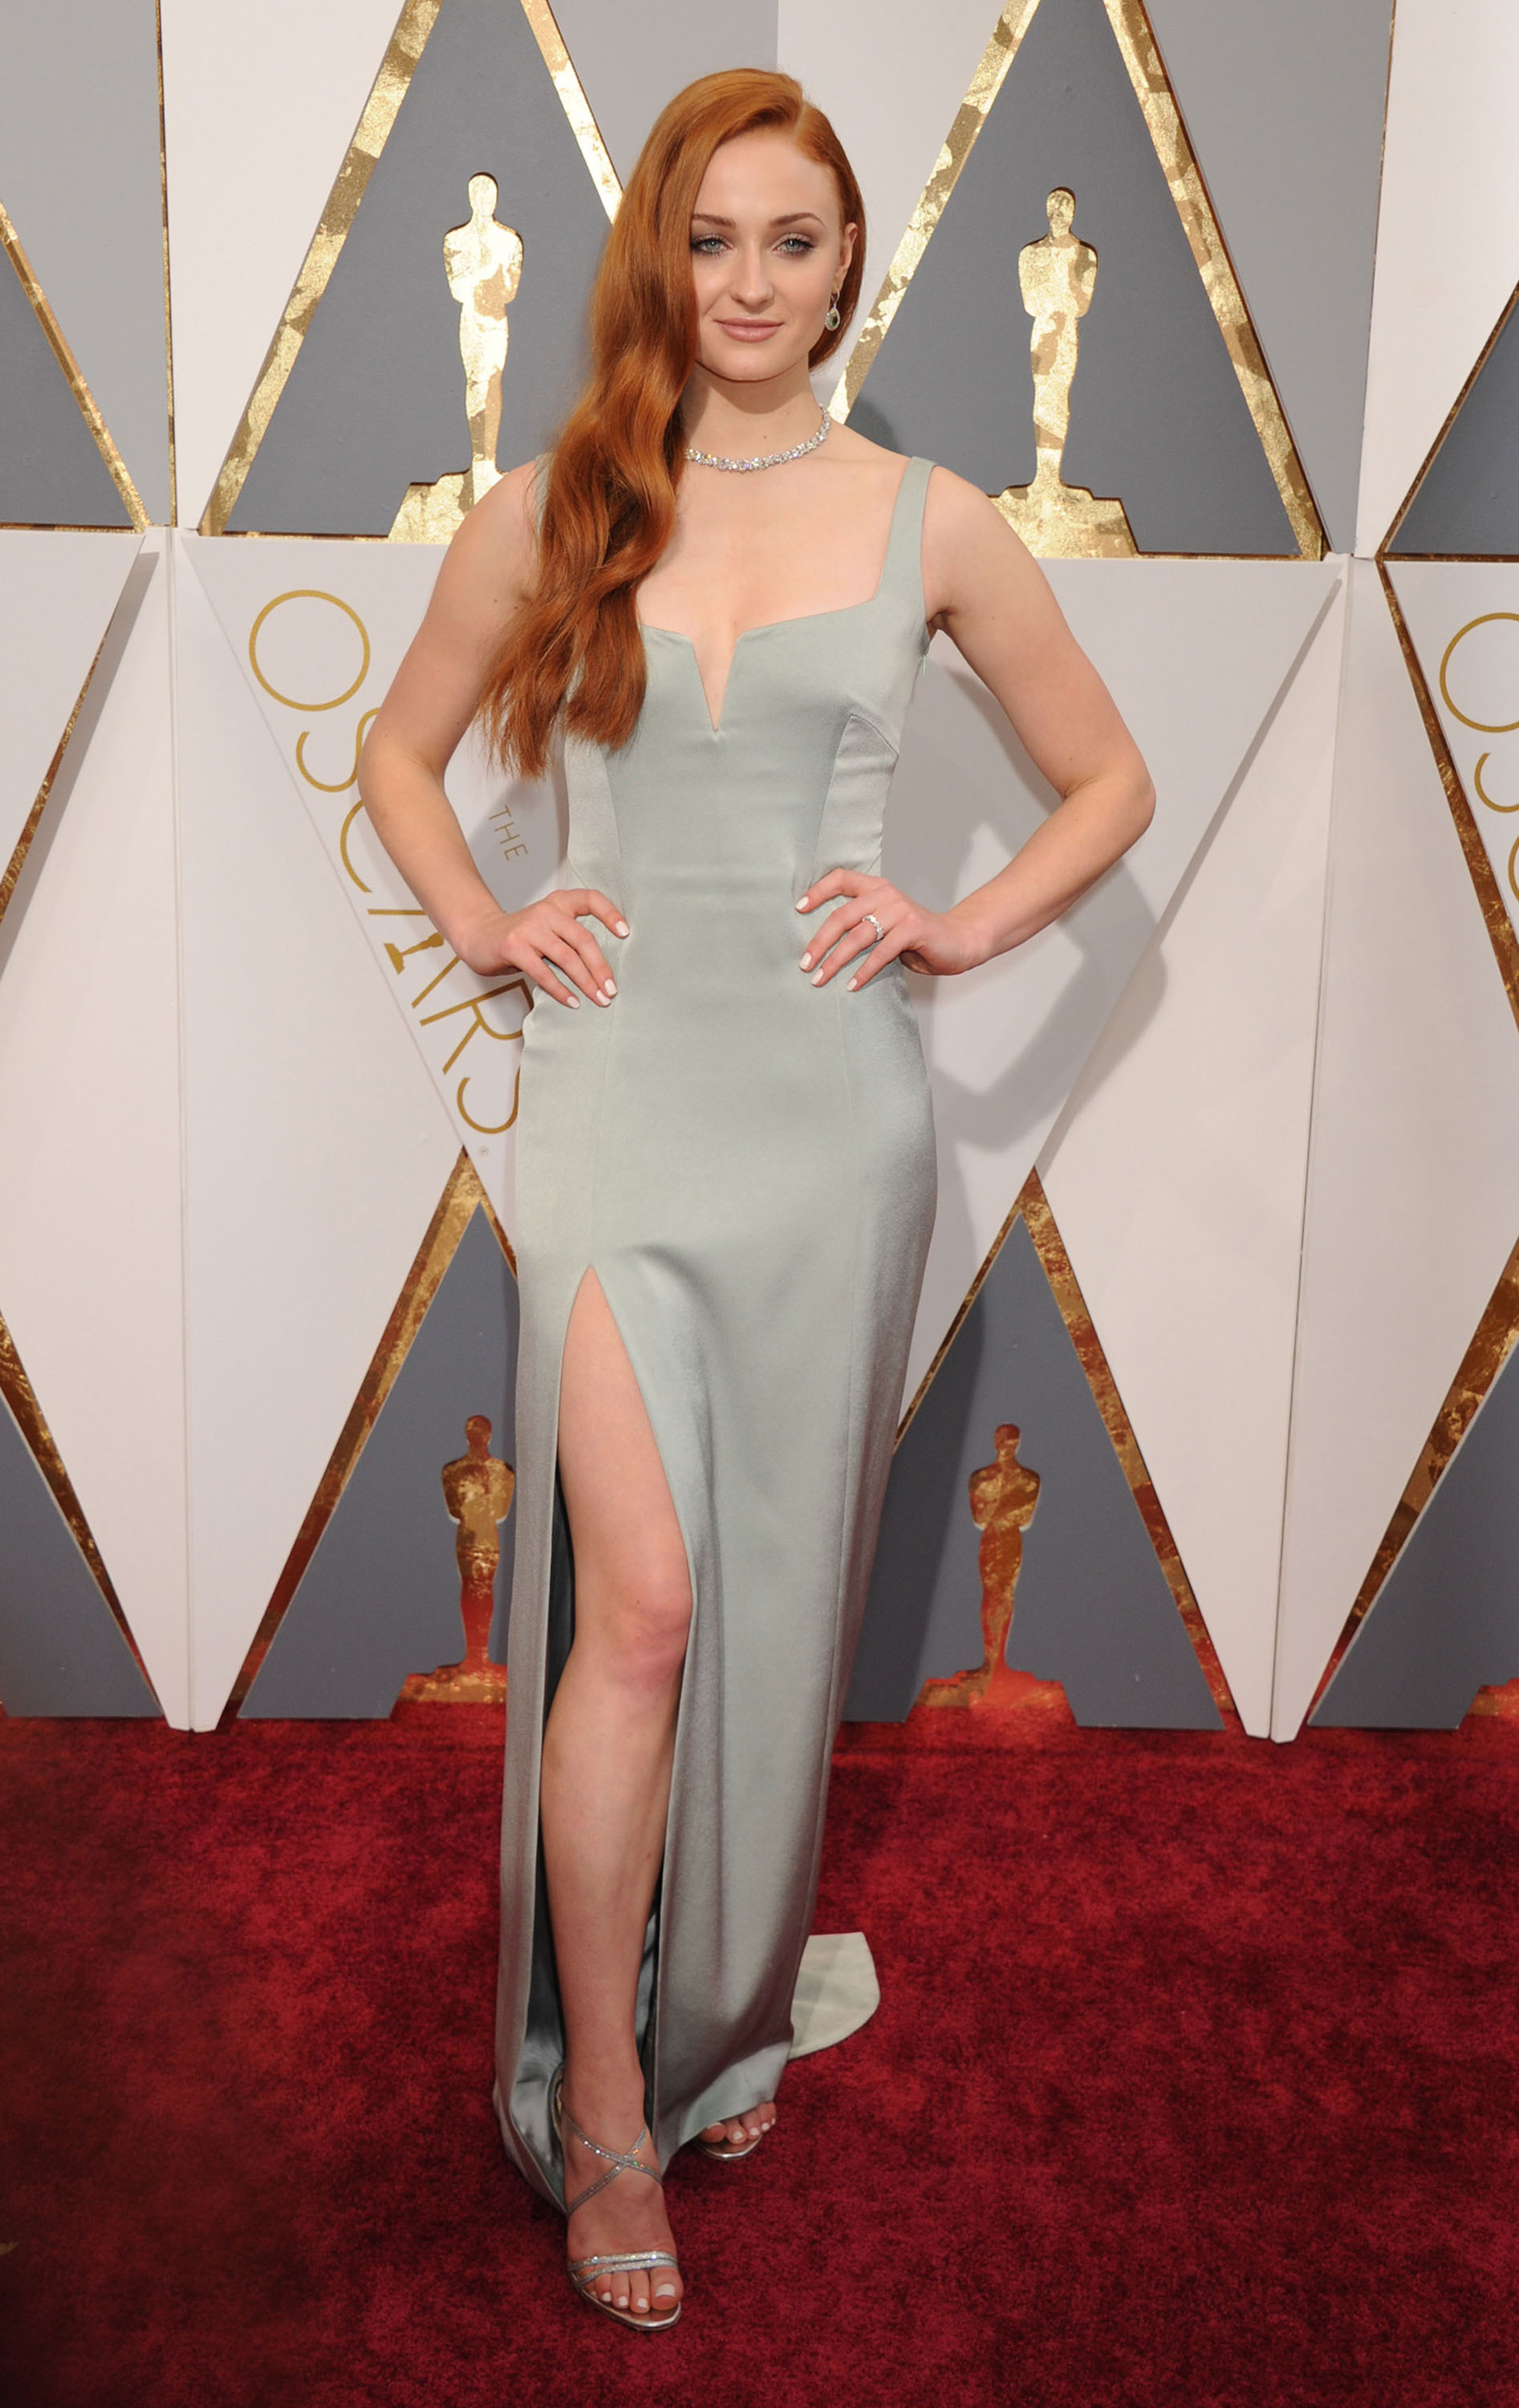 51982312 Celebrities arriving at the 88th Annual Academy Awards at the Hollywood & Highland Center in Hollywood, California on February 28, 2016. Celebrities arriving at the 88th Annual Academy Awards at the Hollywood & Highland Center in Hollywood, California on February 28, 2016. Pictured: Sophie Turner FameFlynet, Inc - Beverly Hills, CA, USA - +1 (310) 505-9876 RESTRICTIONS APPLY: NO FRANCE